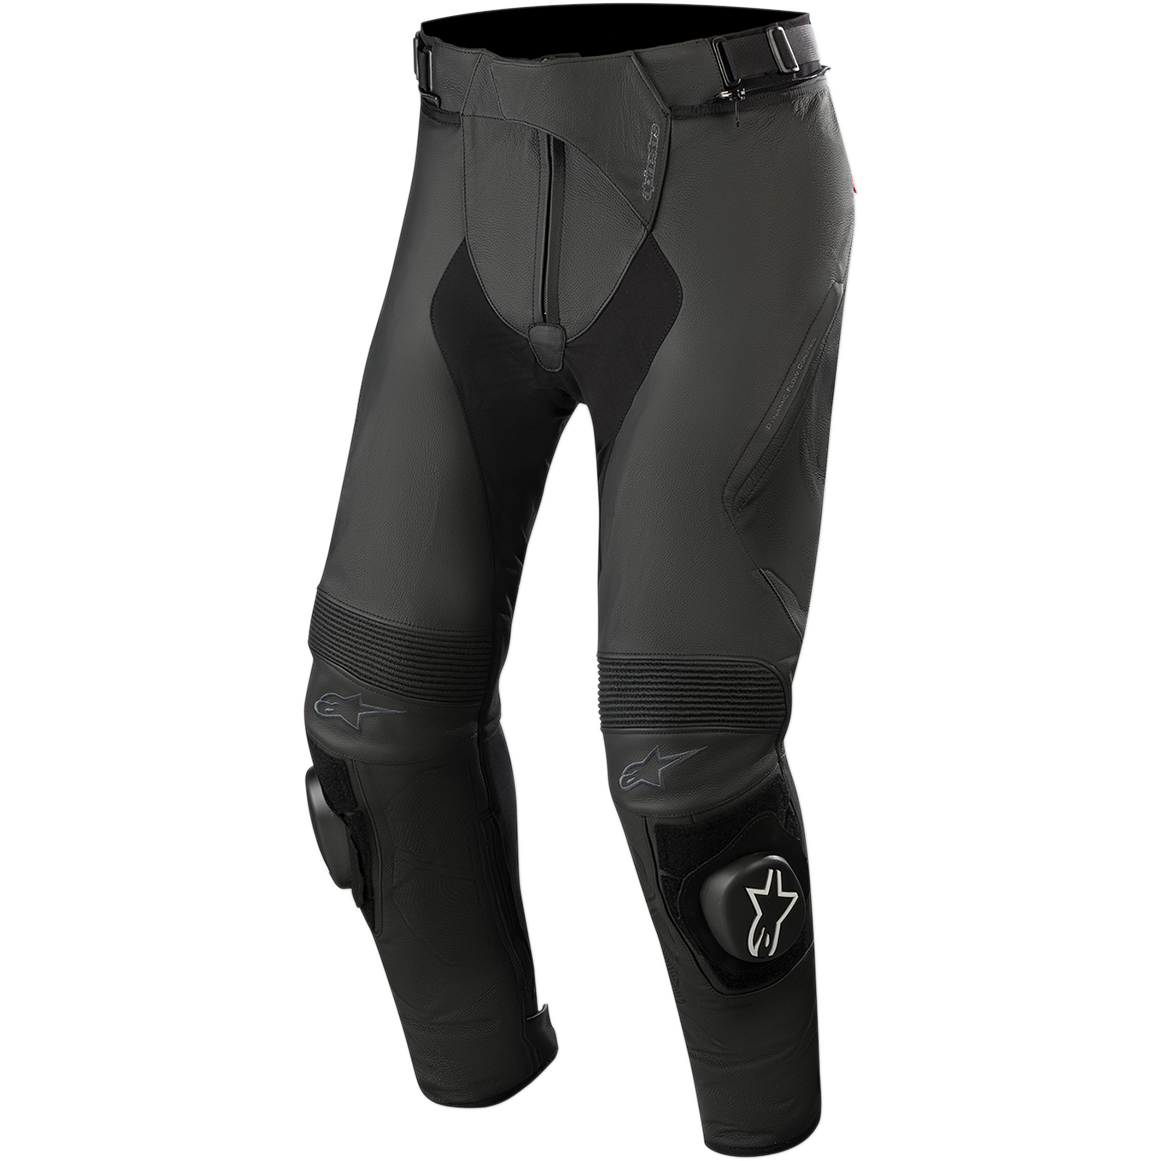 Missile V2 Pants — Short